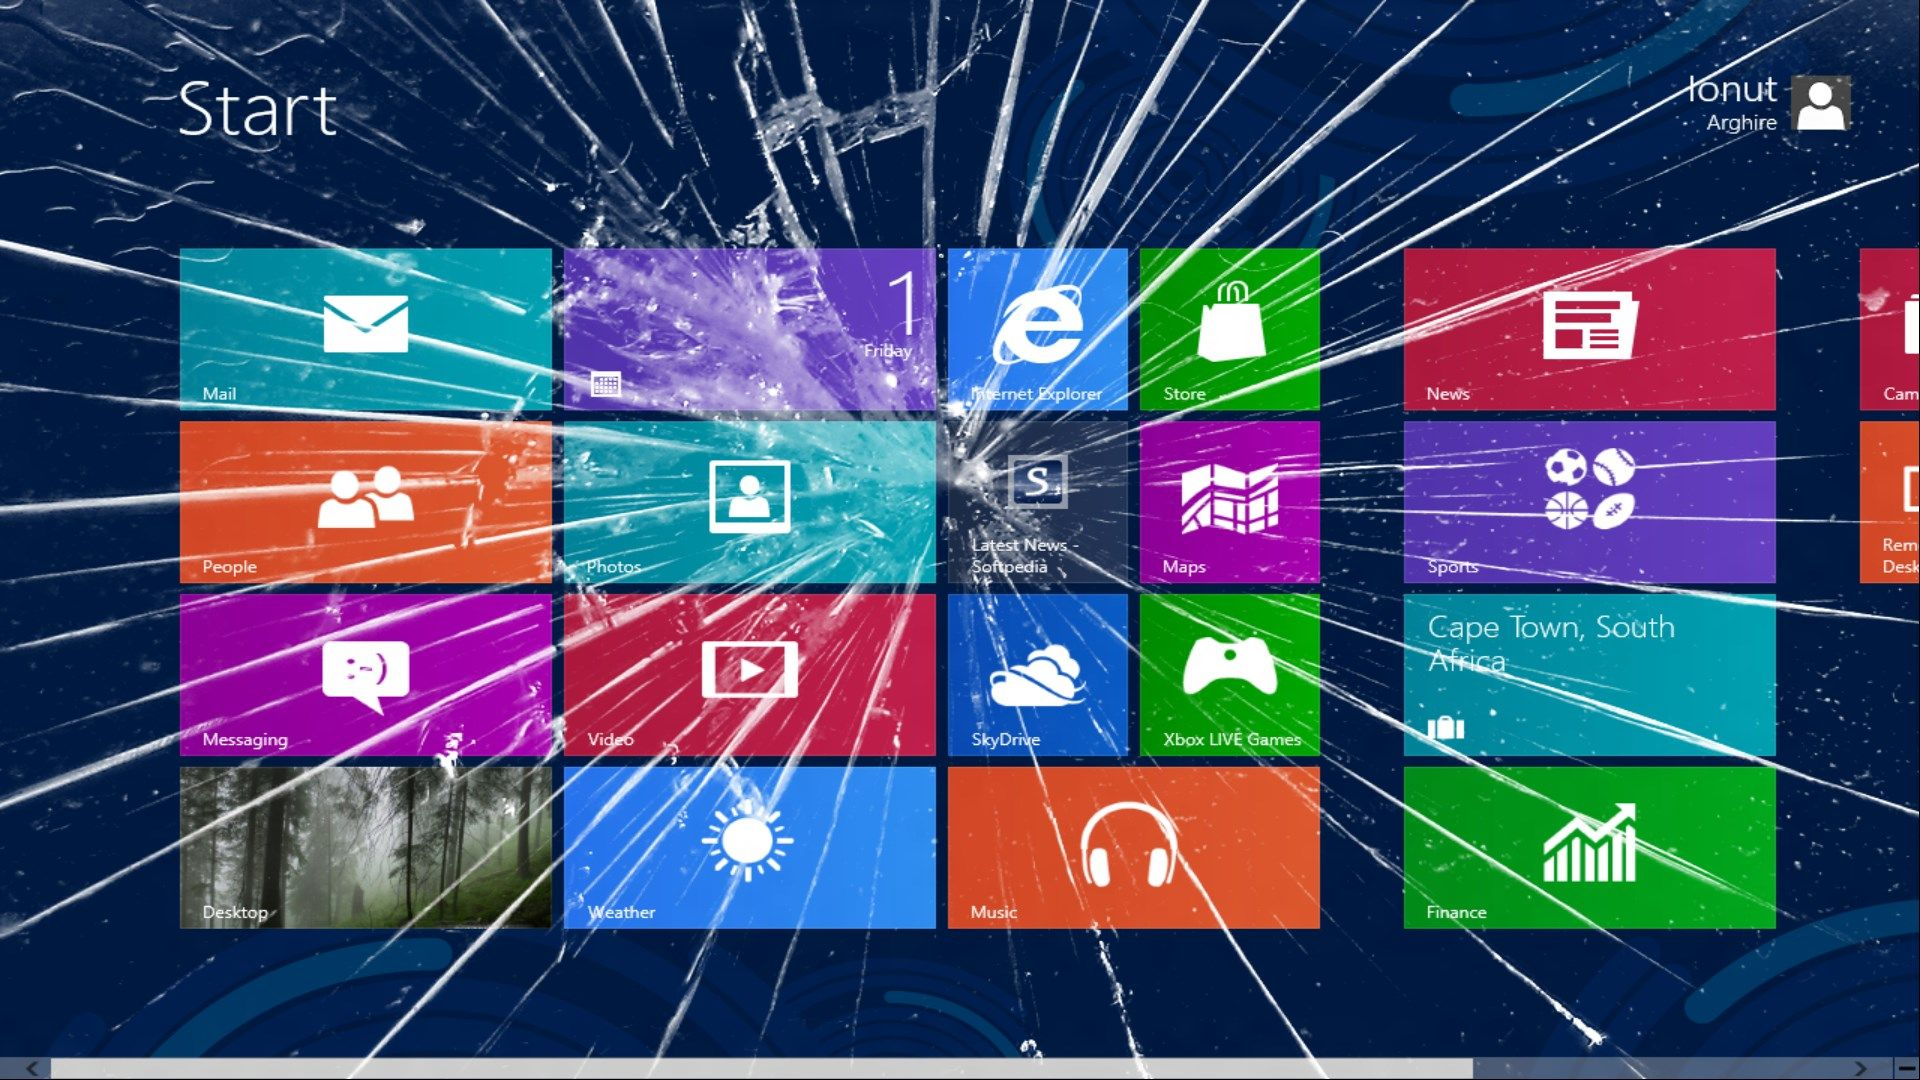 Broken Screen Wallpaper Windows 8 Broken screen